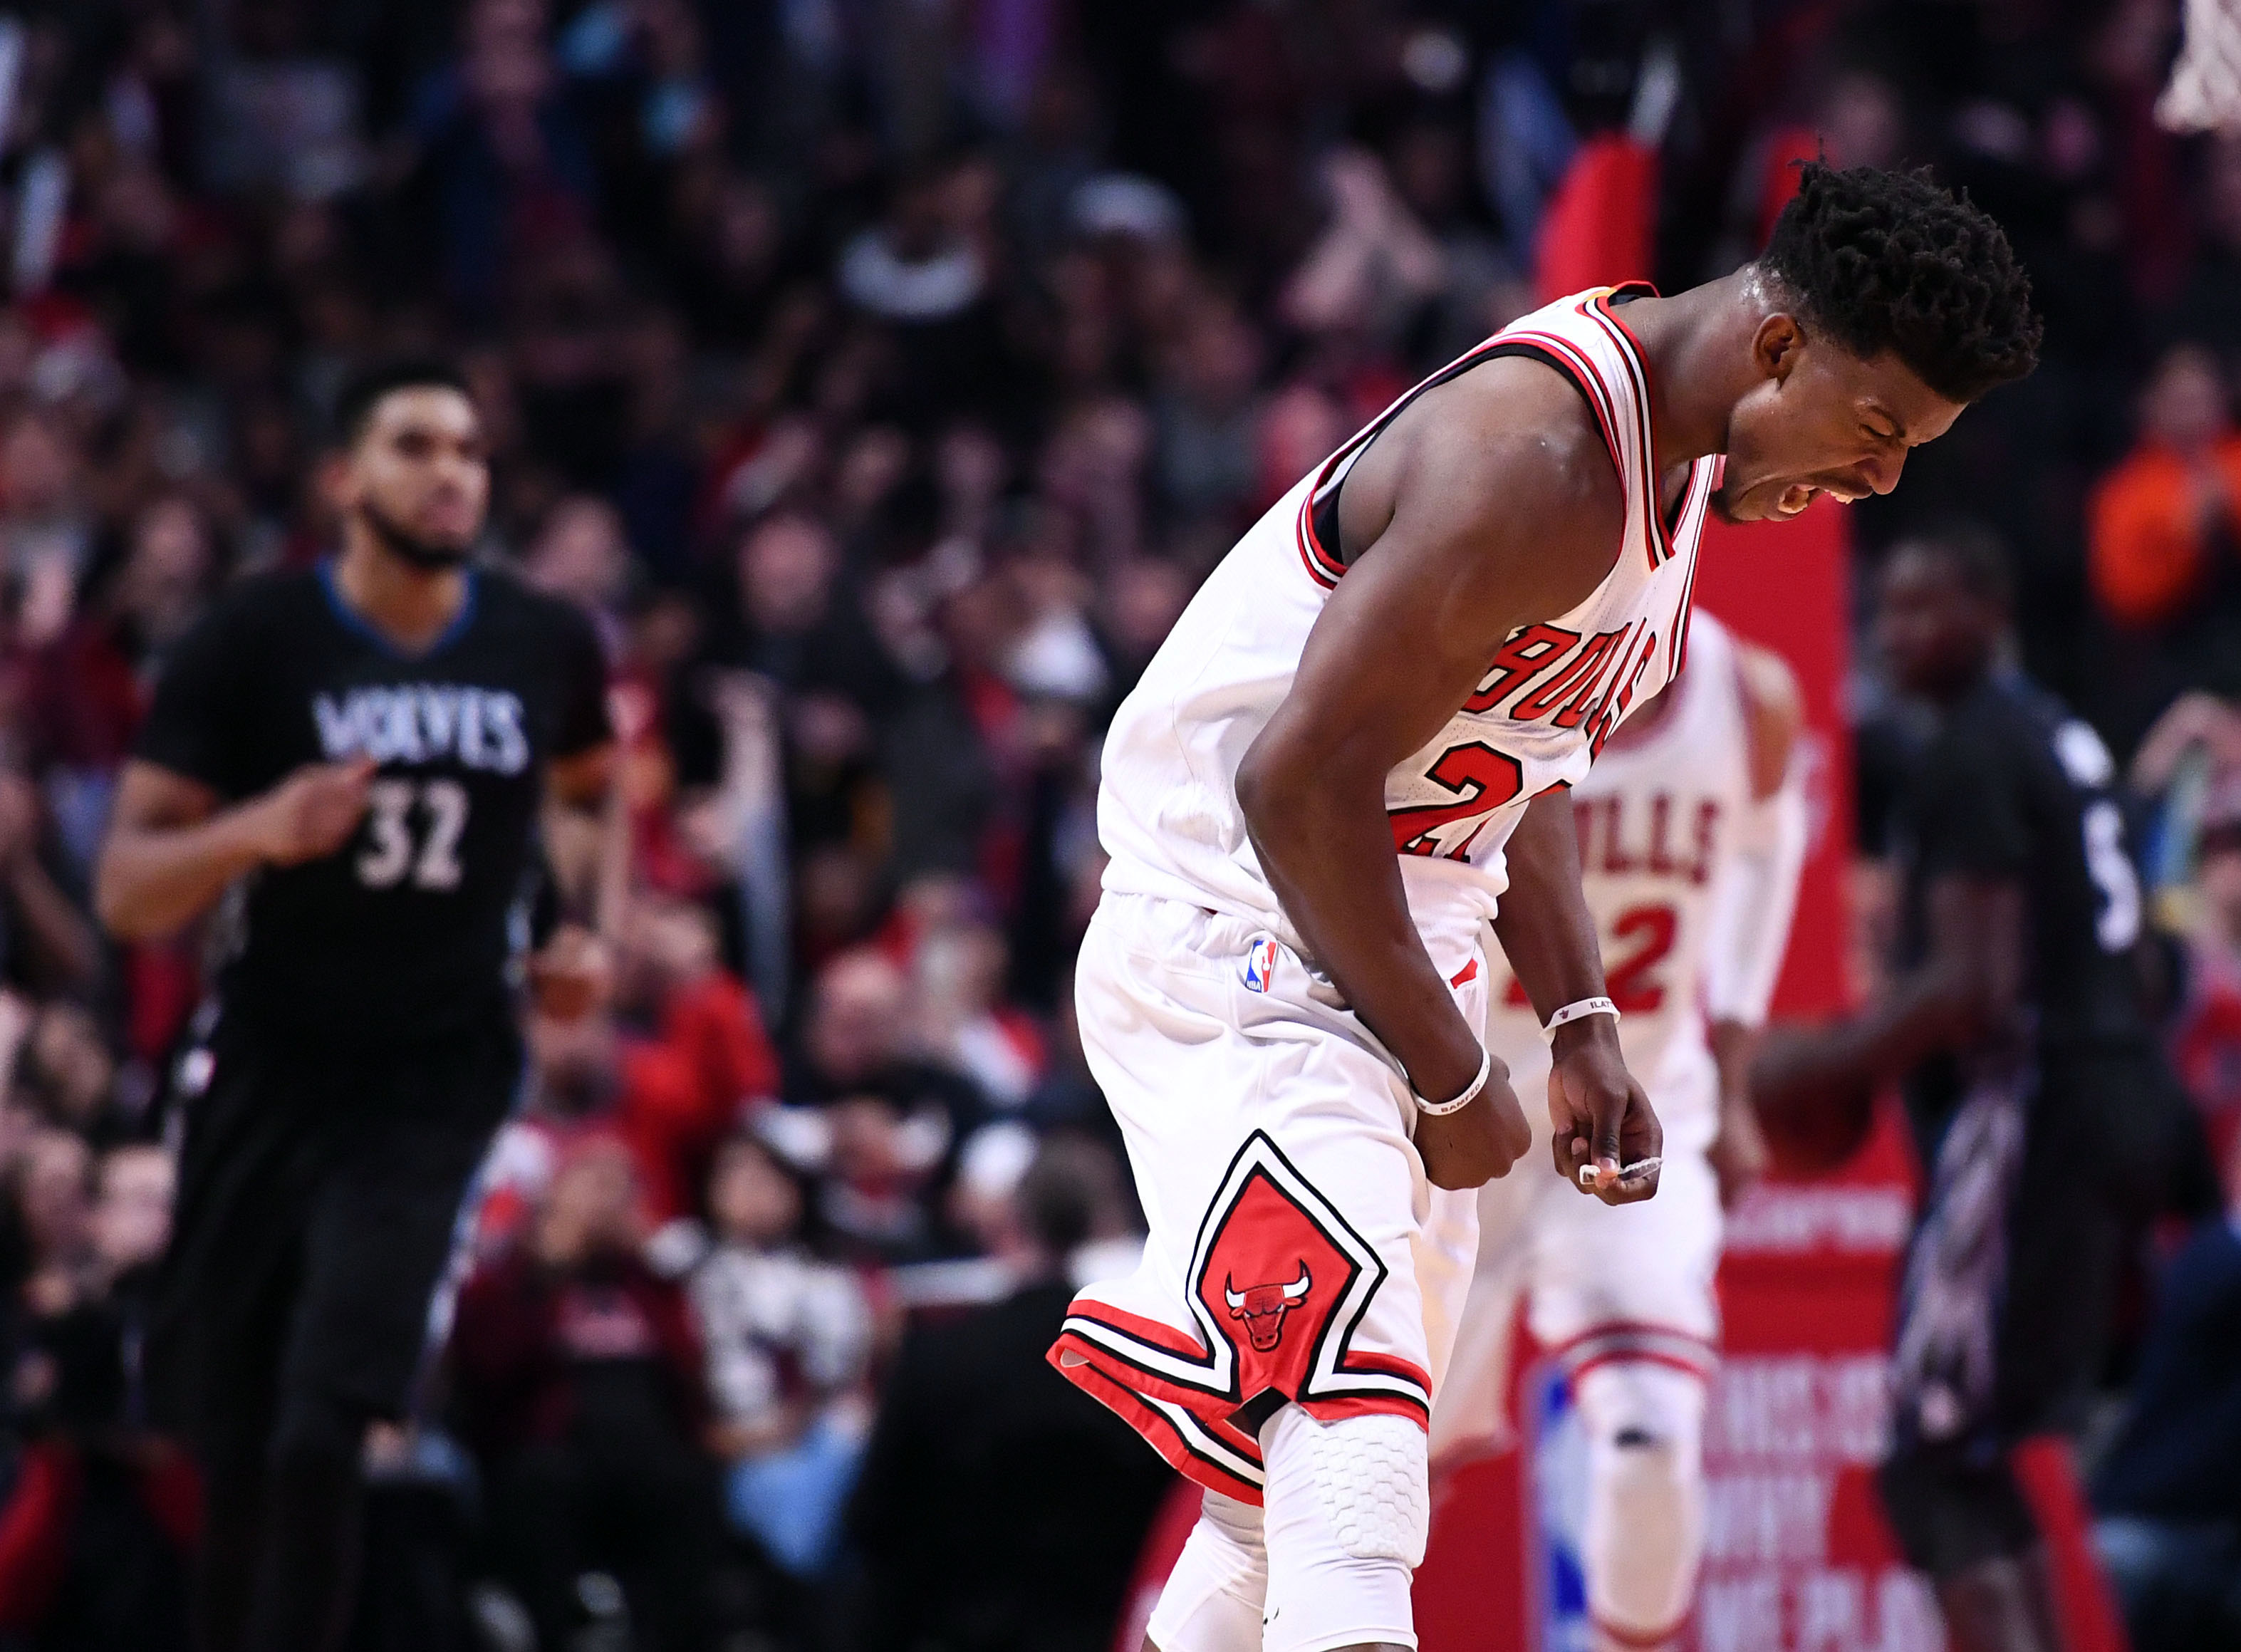 Chi Chicago Bulls Jimmy Butler Beautiful Reaction Free Desktop Hd Background Mobile Photos